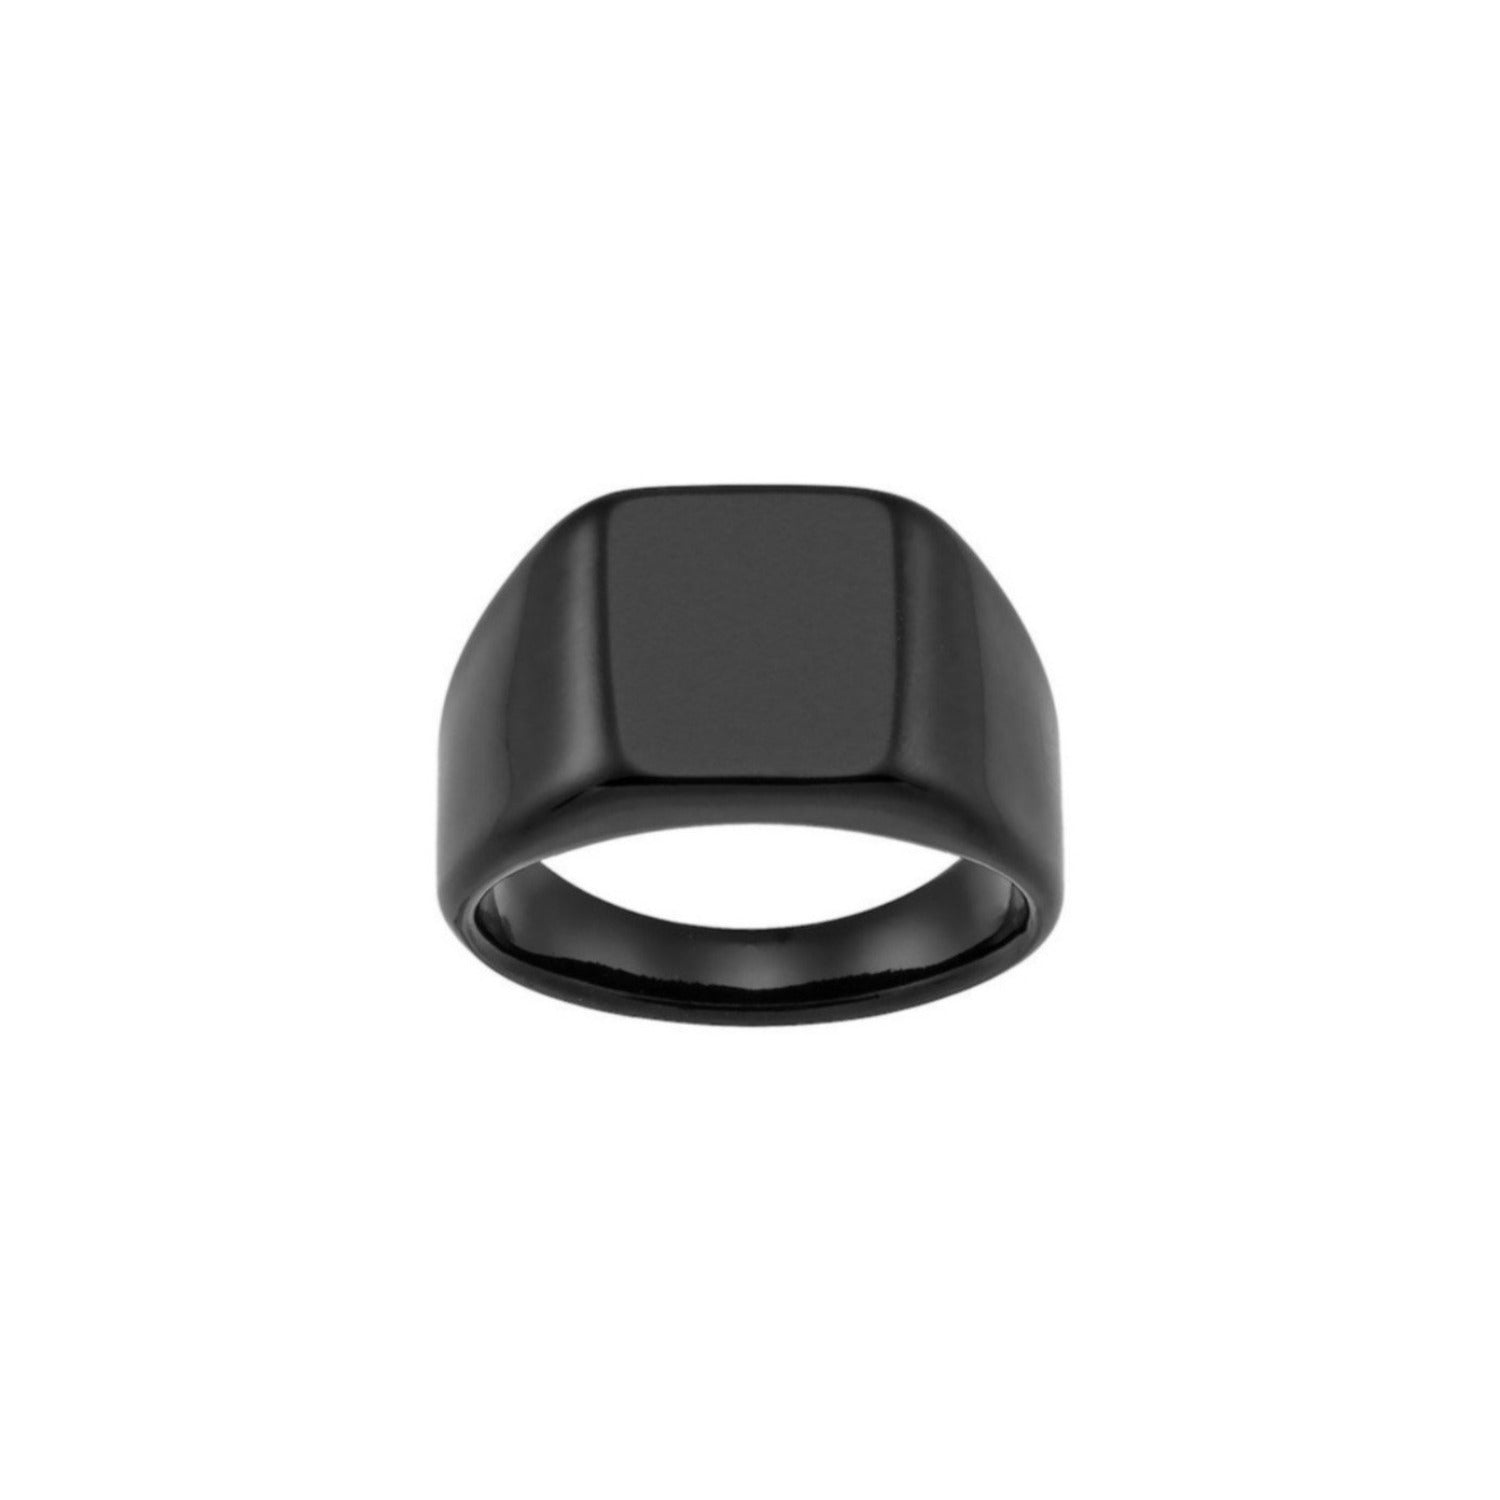 Aeon | Lisbon Ring | Black Ion Plated Stainless Steel